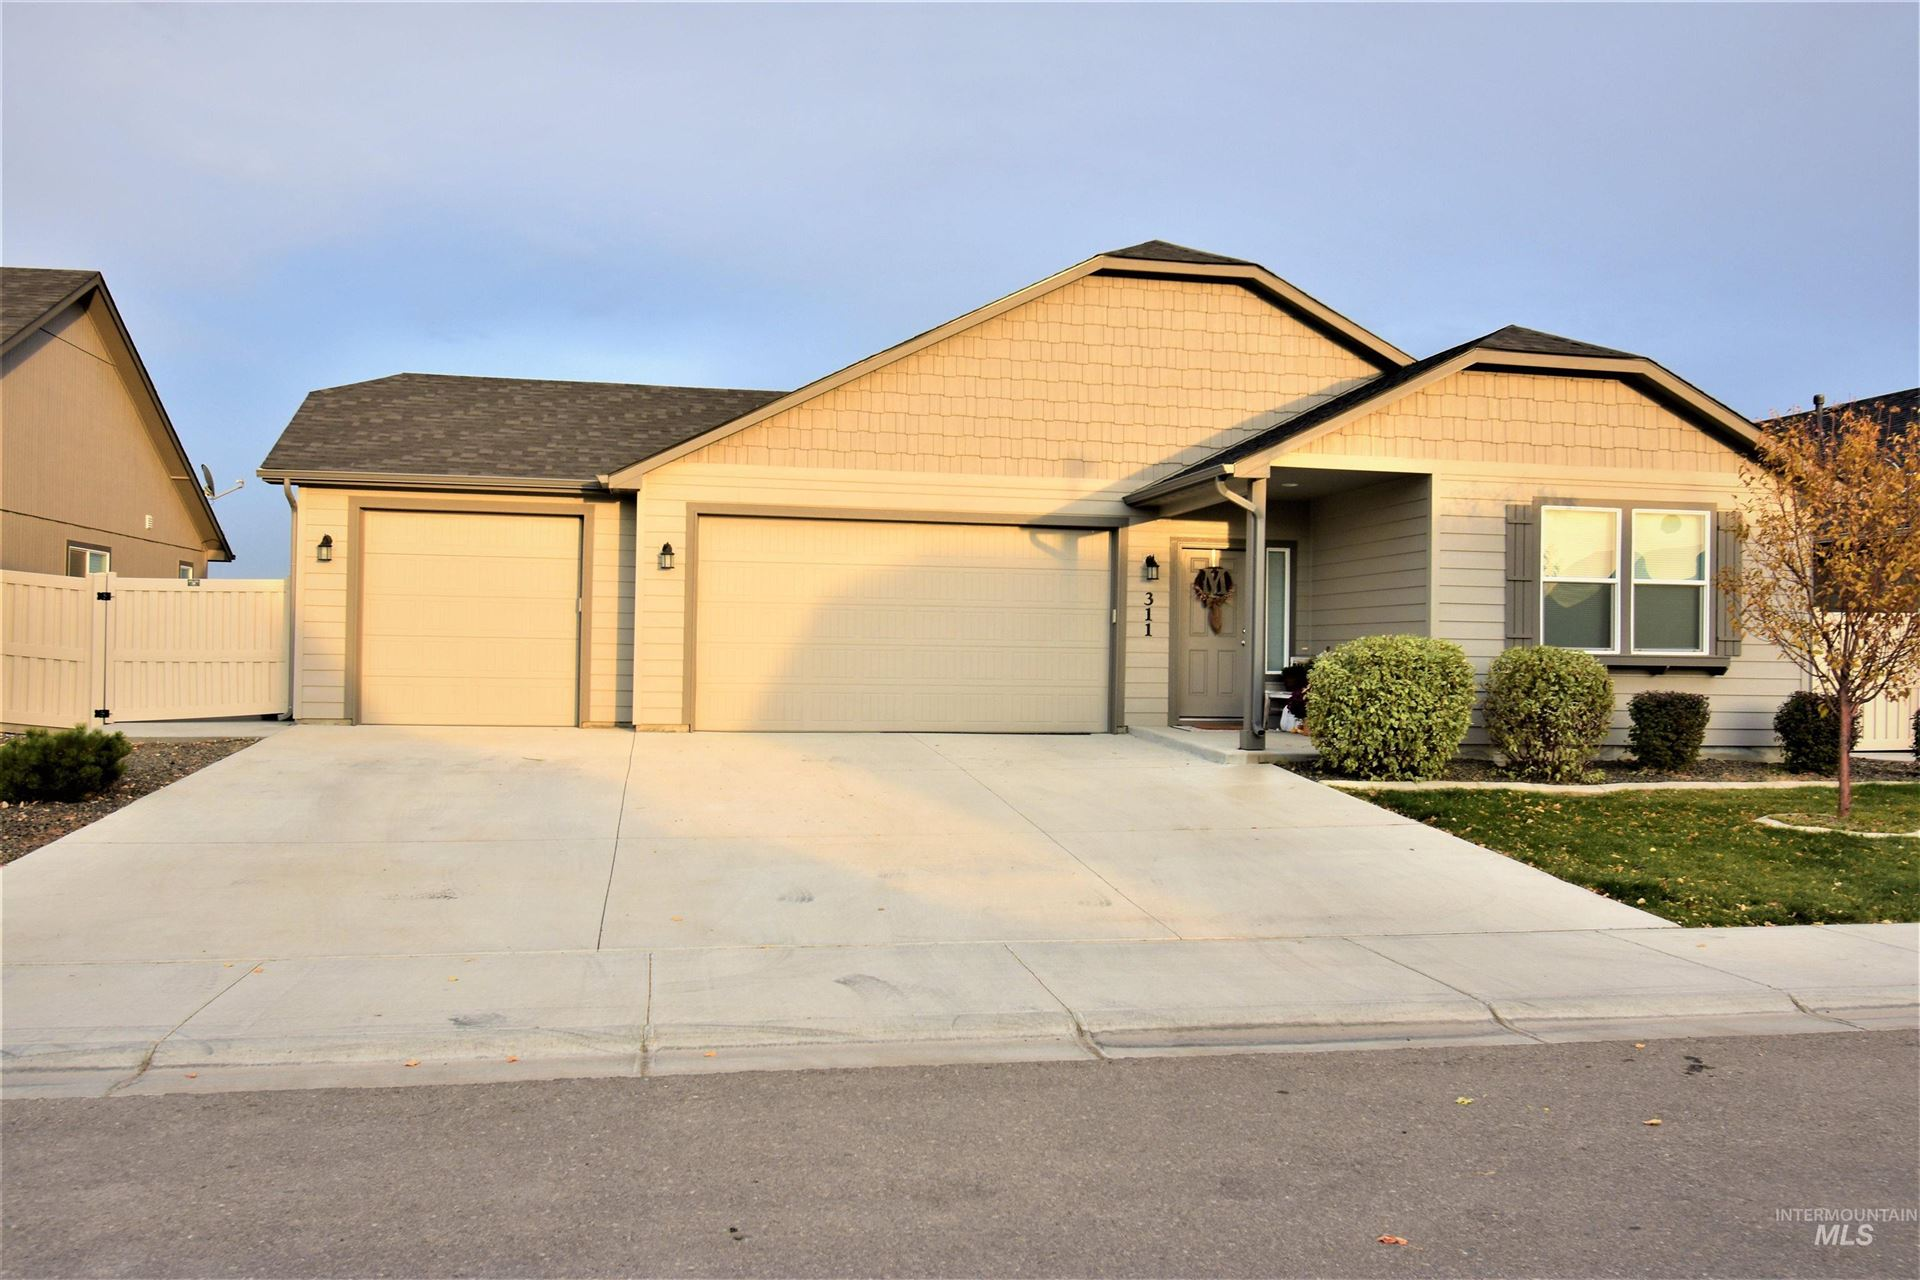 311 Concourse Ave., Caldwell, ID 83605 - MLS#: 98822783